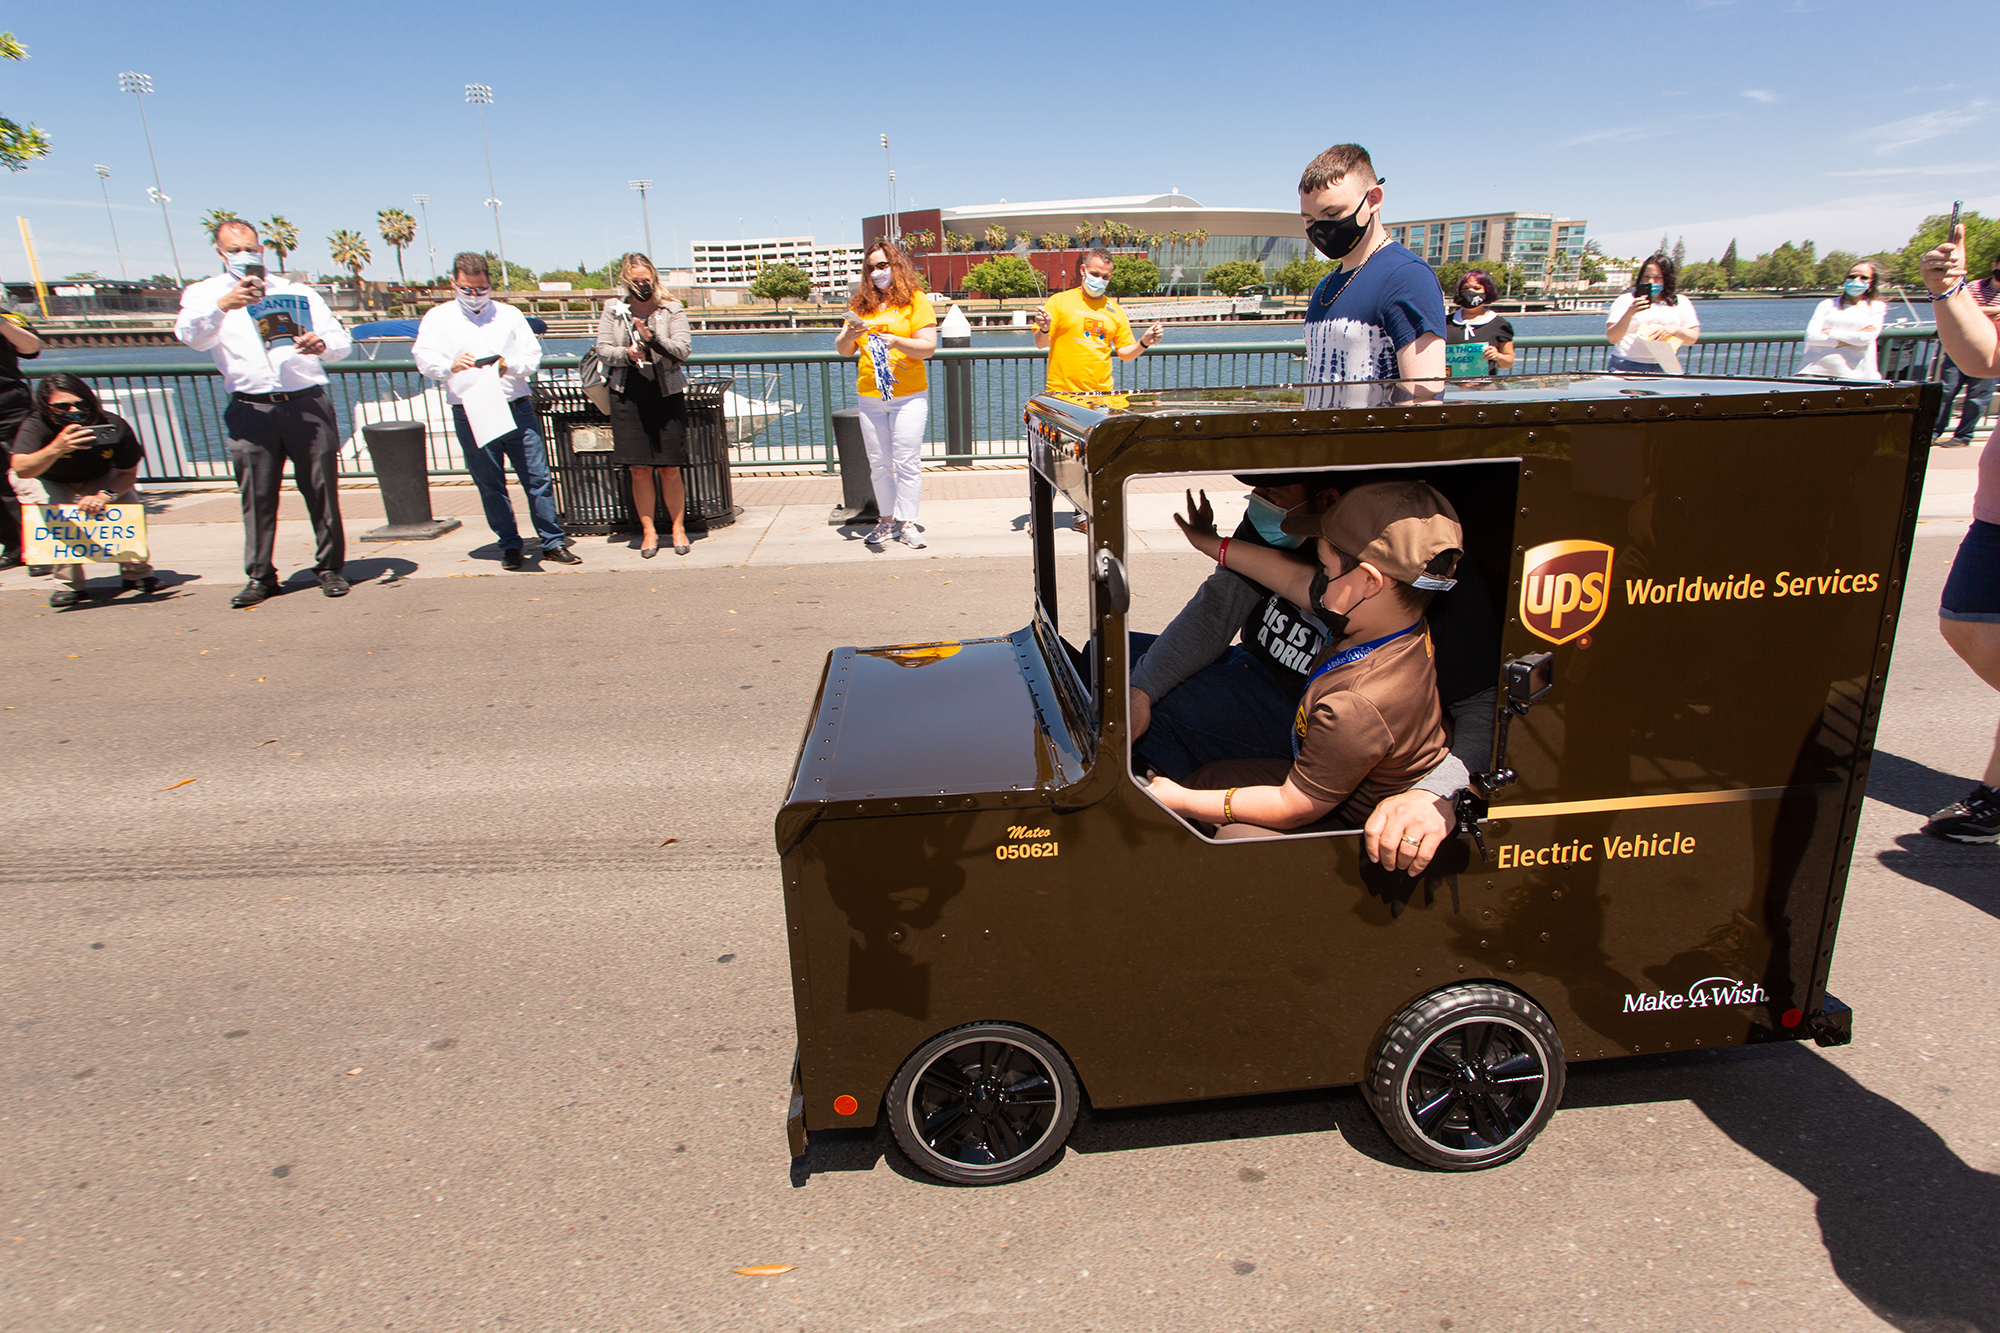 Mateo Toscano — from Stockton, California, who recently had his wish of becoming a UPS driver come true